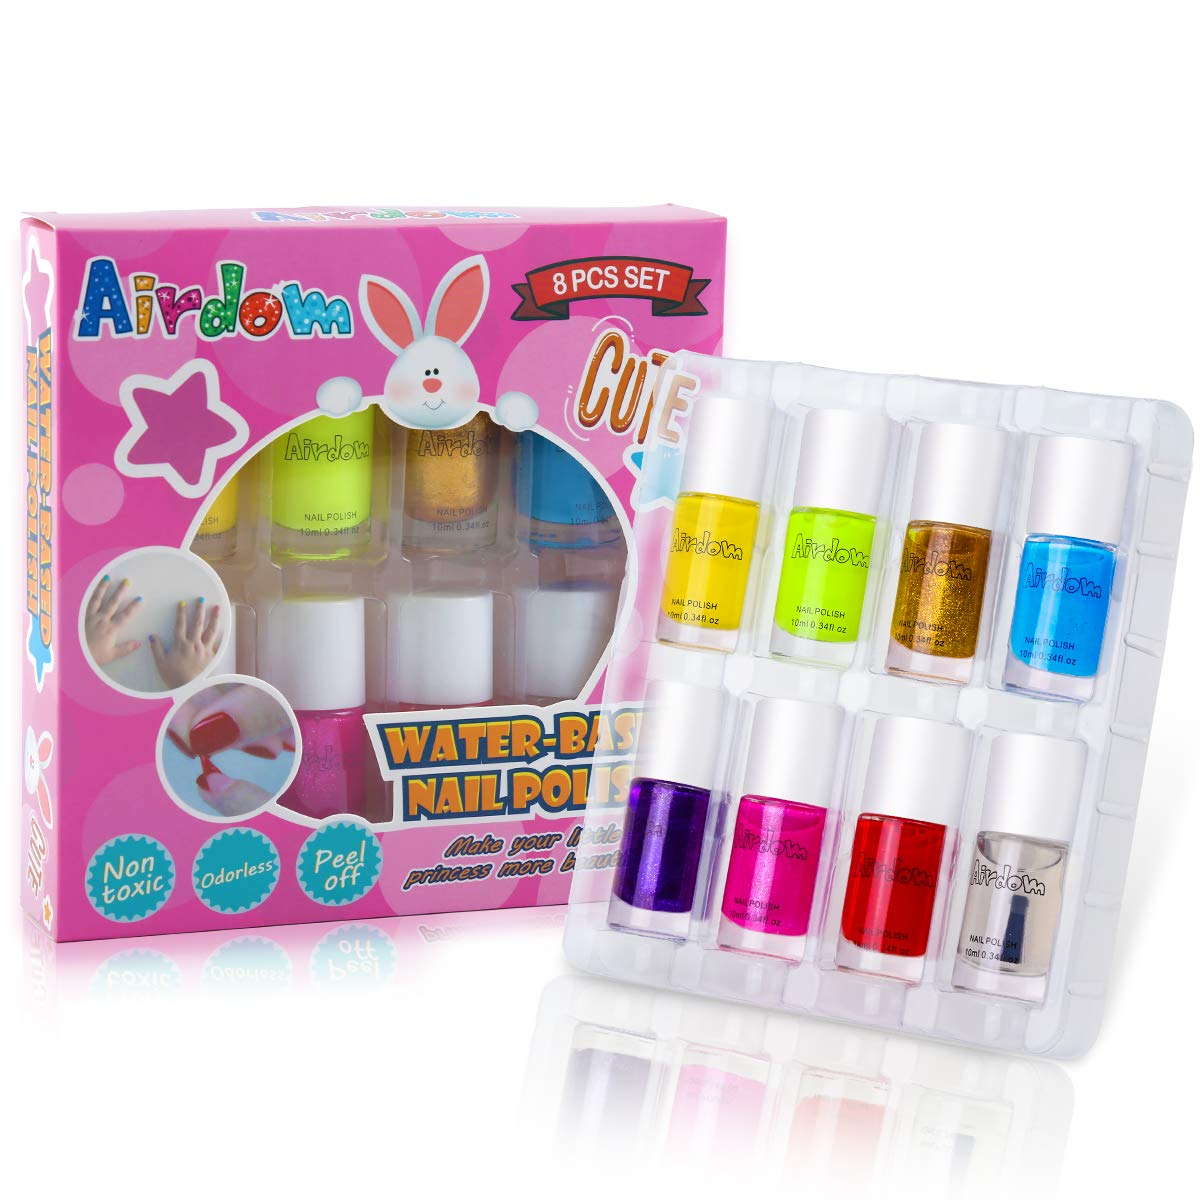 Airdom Non Toxic Kids Nail Polish Water Based Natural Odorless Safe Peel Off Nail Polish Set Quick Dry Nail Polish Gifts Toys Kit